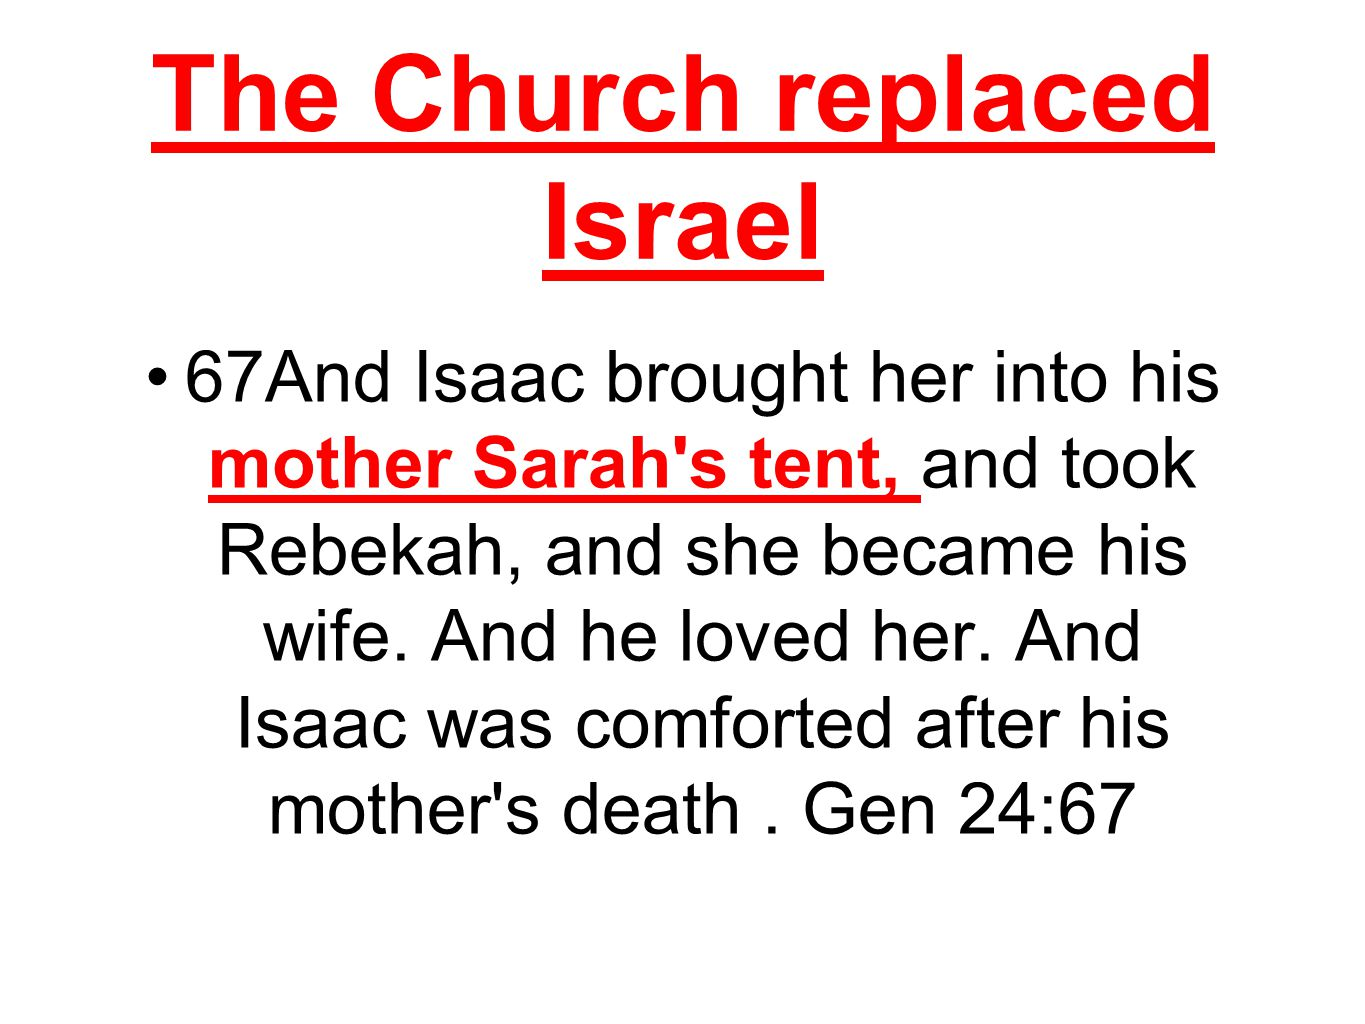 The Church replaced Israel 67And Isaac brought her into his mother Sarah s tent, and took Rebekah, and she became his wife.